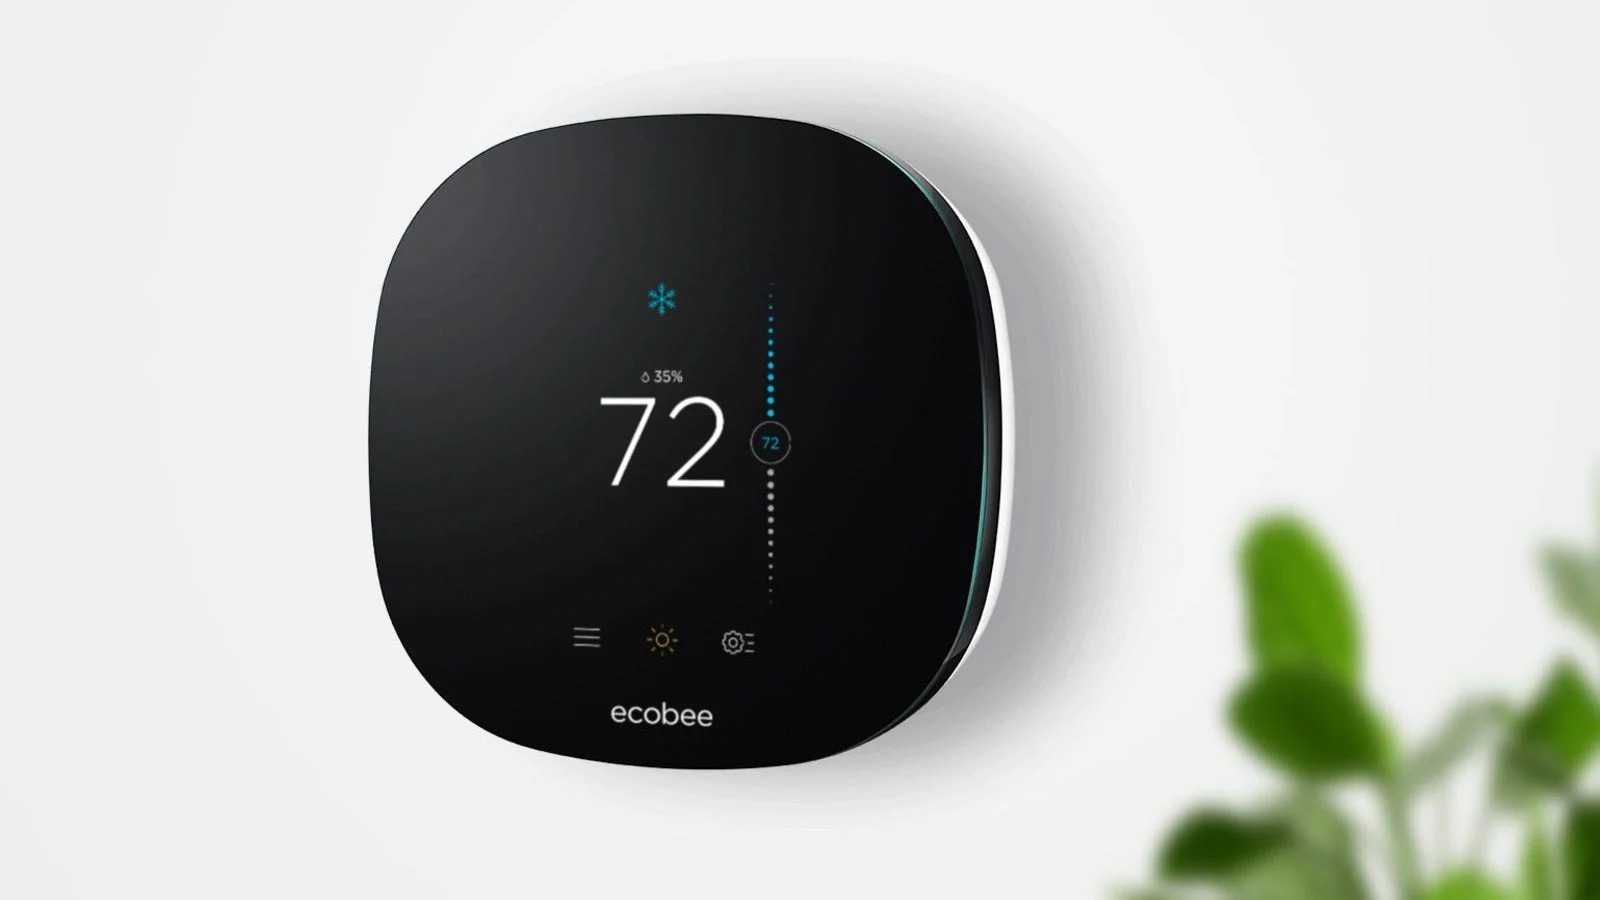 Weekend Digest, Sun, Oct 10: Ultimate guide on lowering your energy bills with smart gadgets